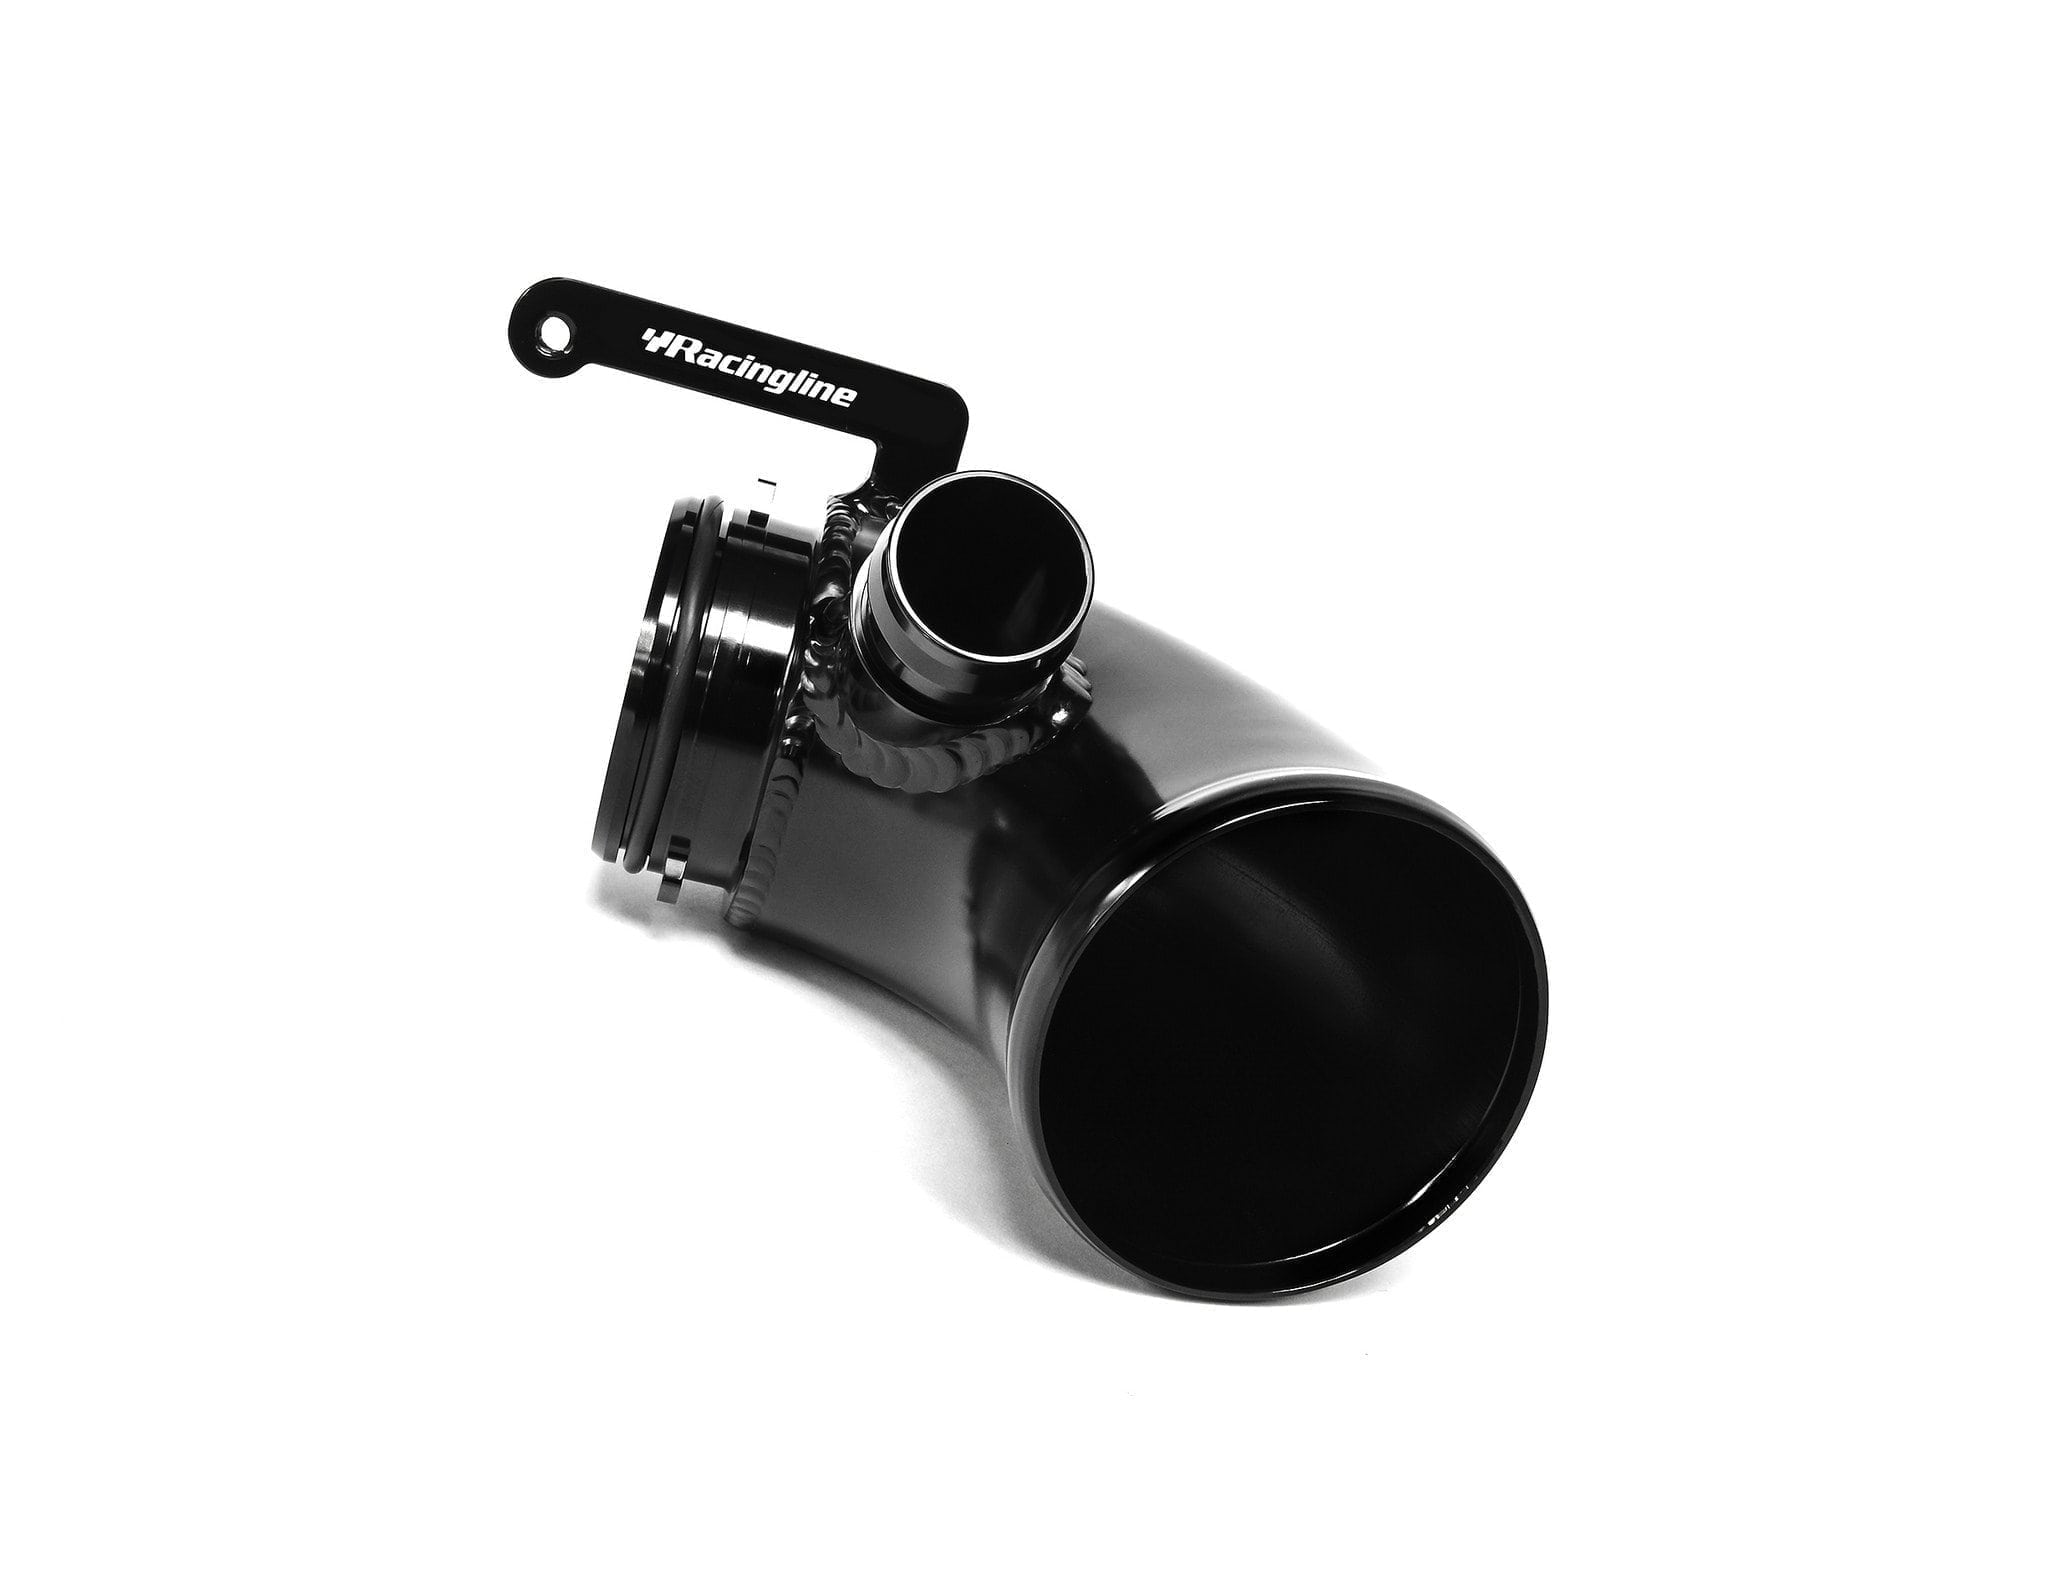 Racingline VWR High Flow Turbo Inlet and Intake Pipe 10% Off Deal